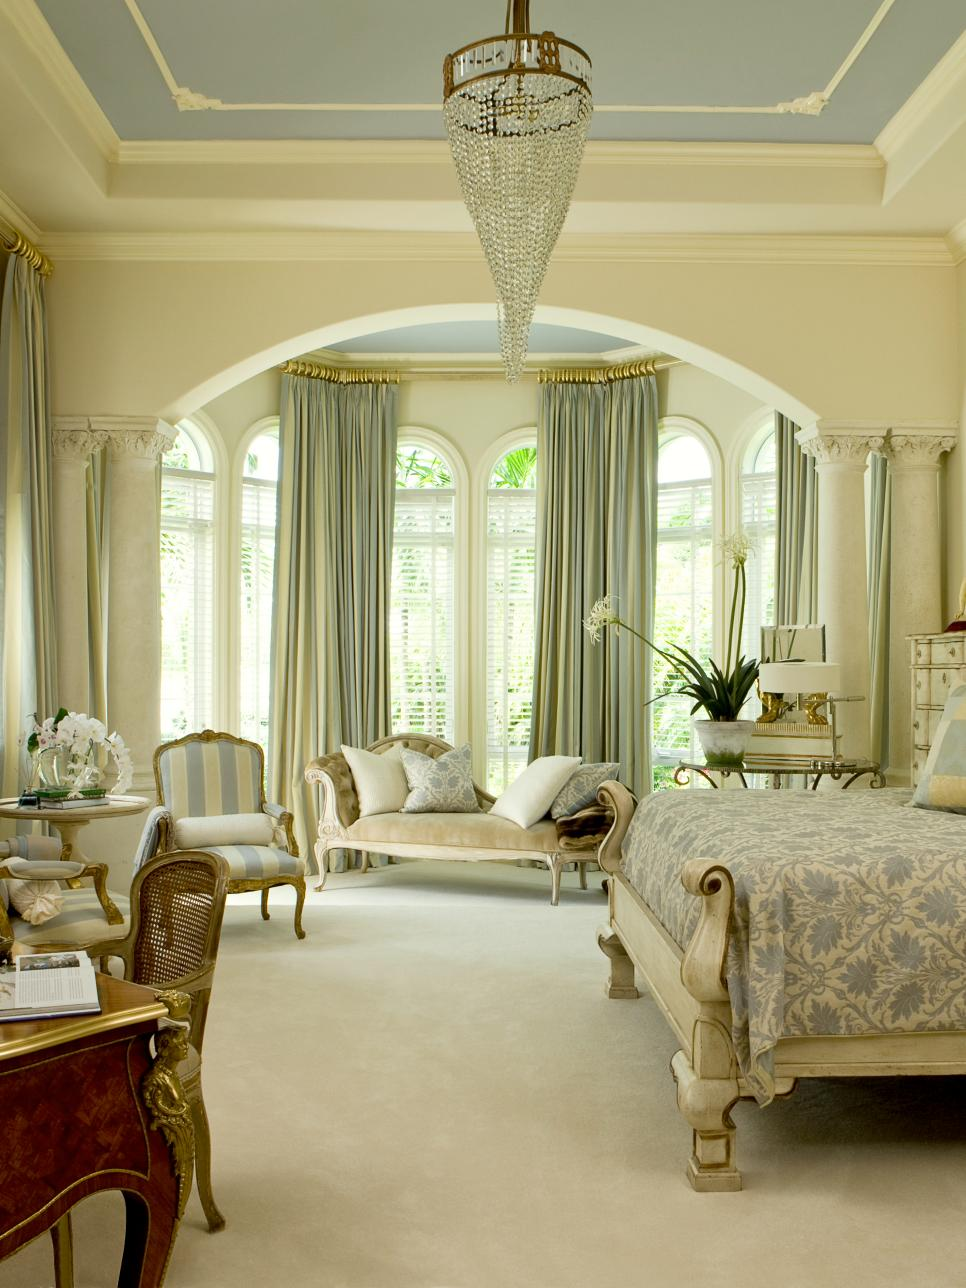 Luxury 8 Window Treatment Ideas For Your Bedroom Hgtv Master Treatments